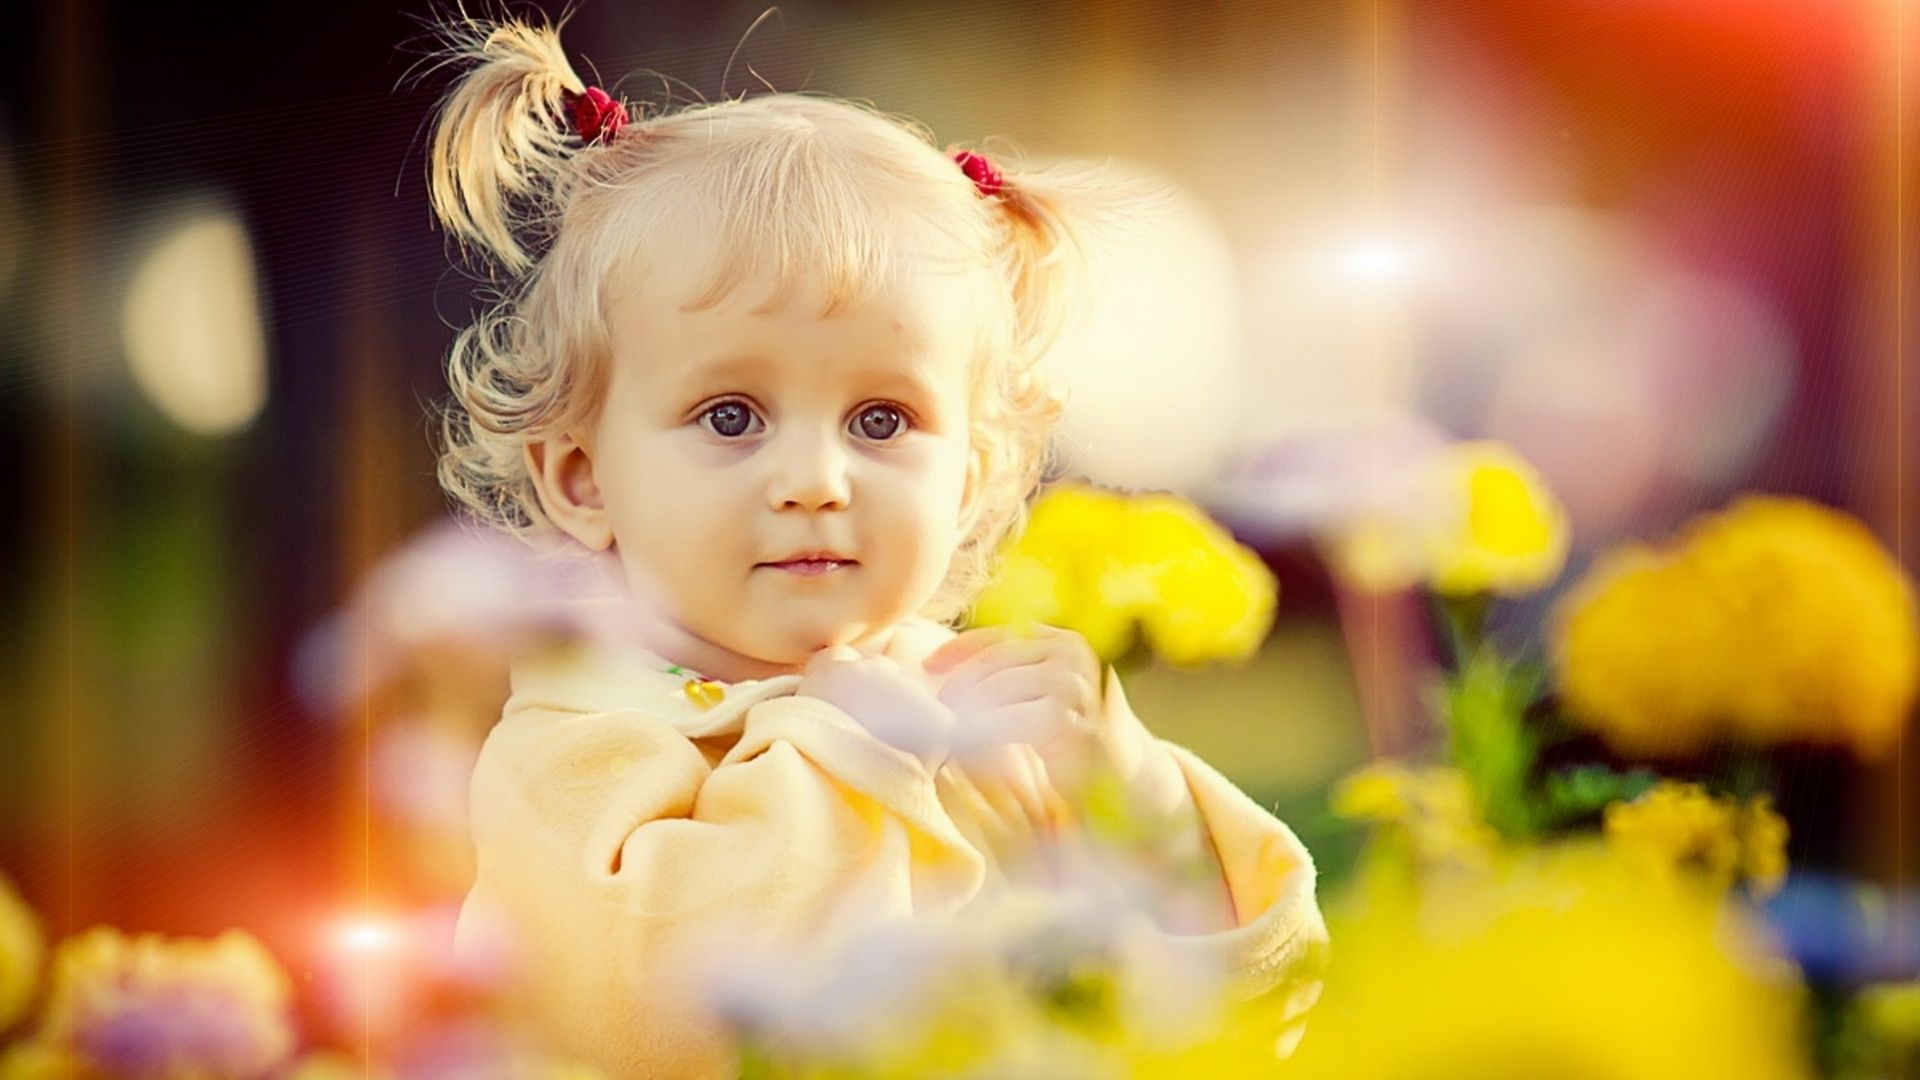 Find out cute baby girl hair style wallpaper on hdpicorner